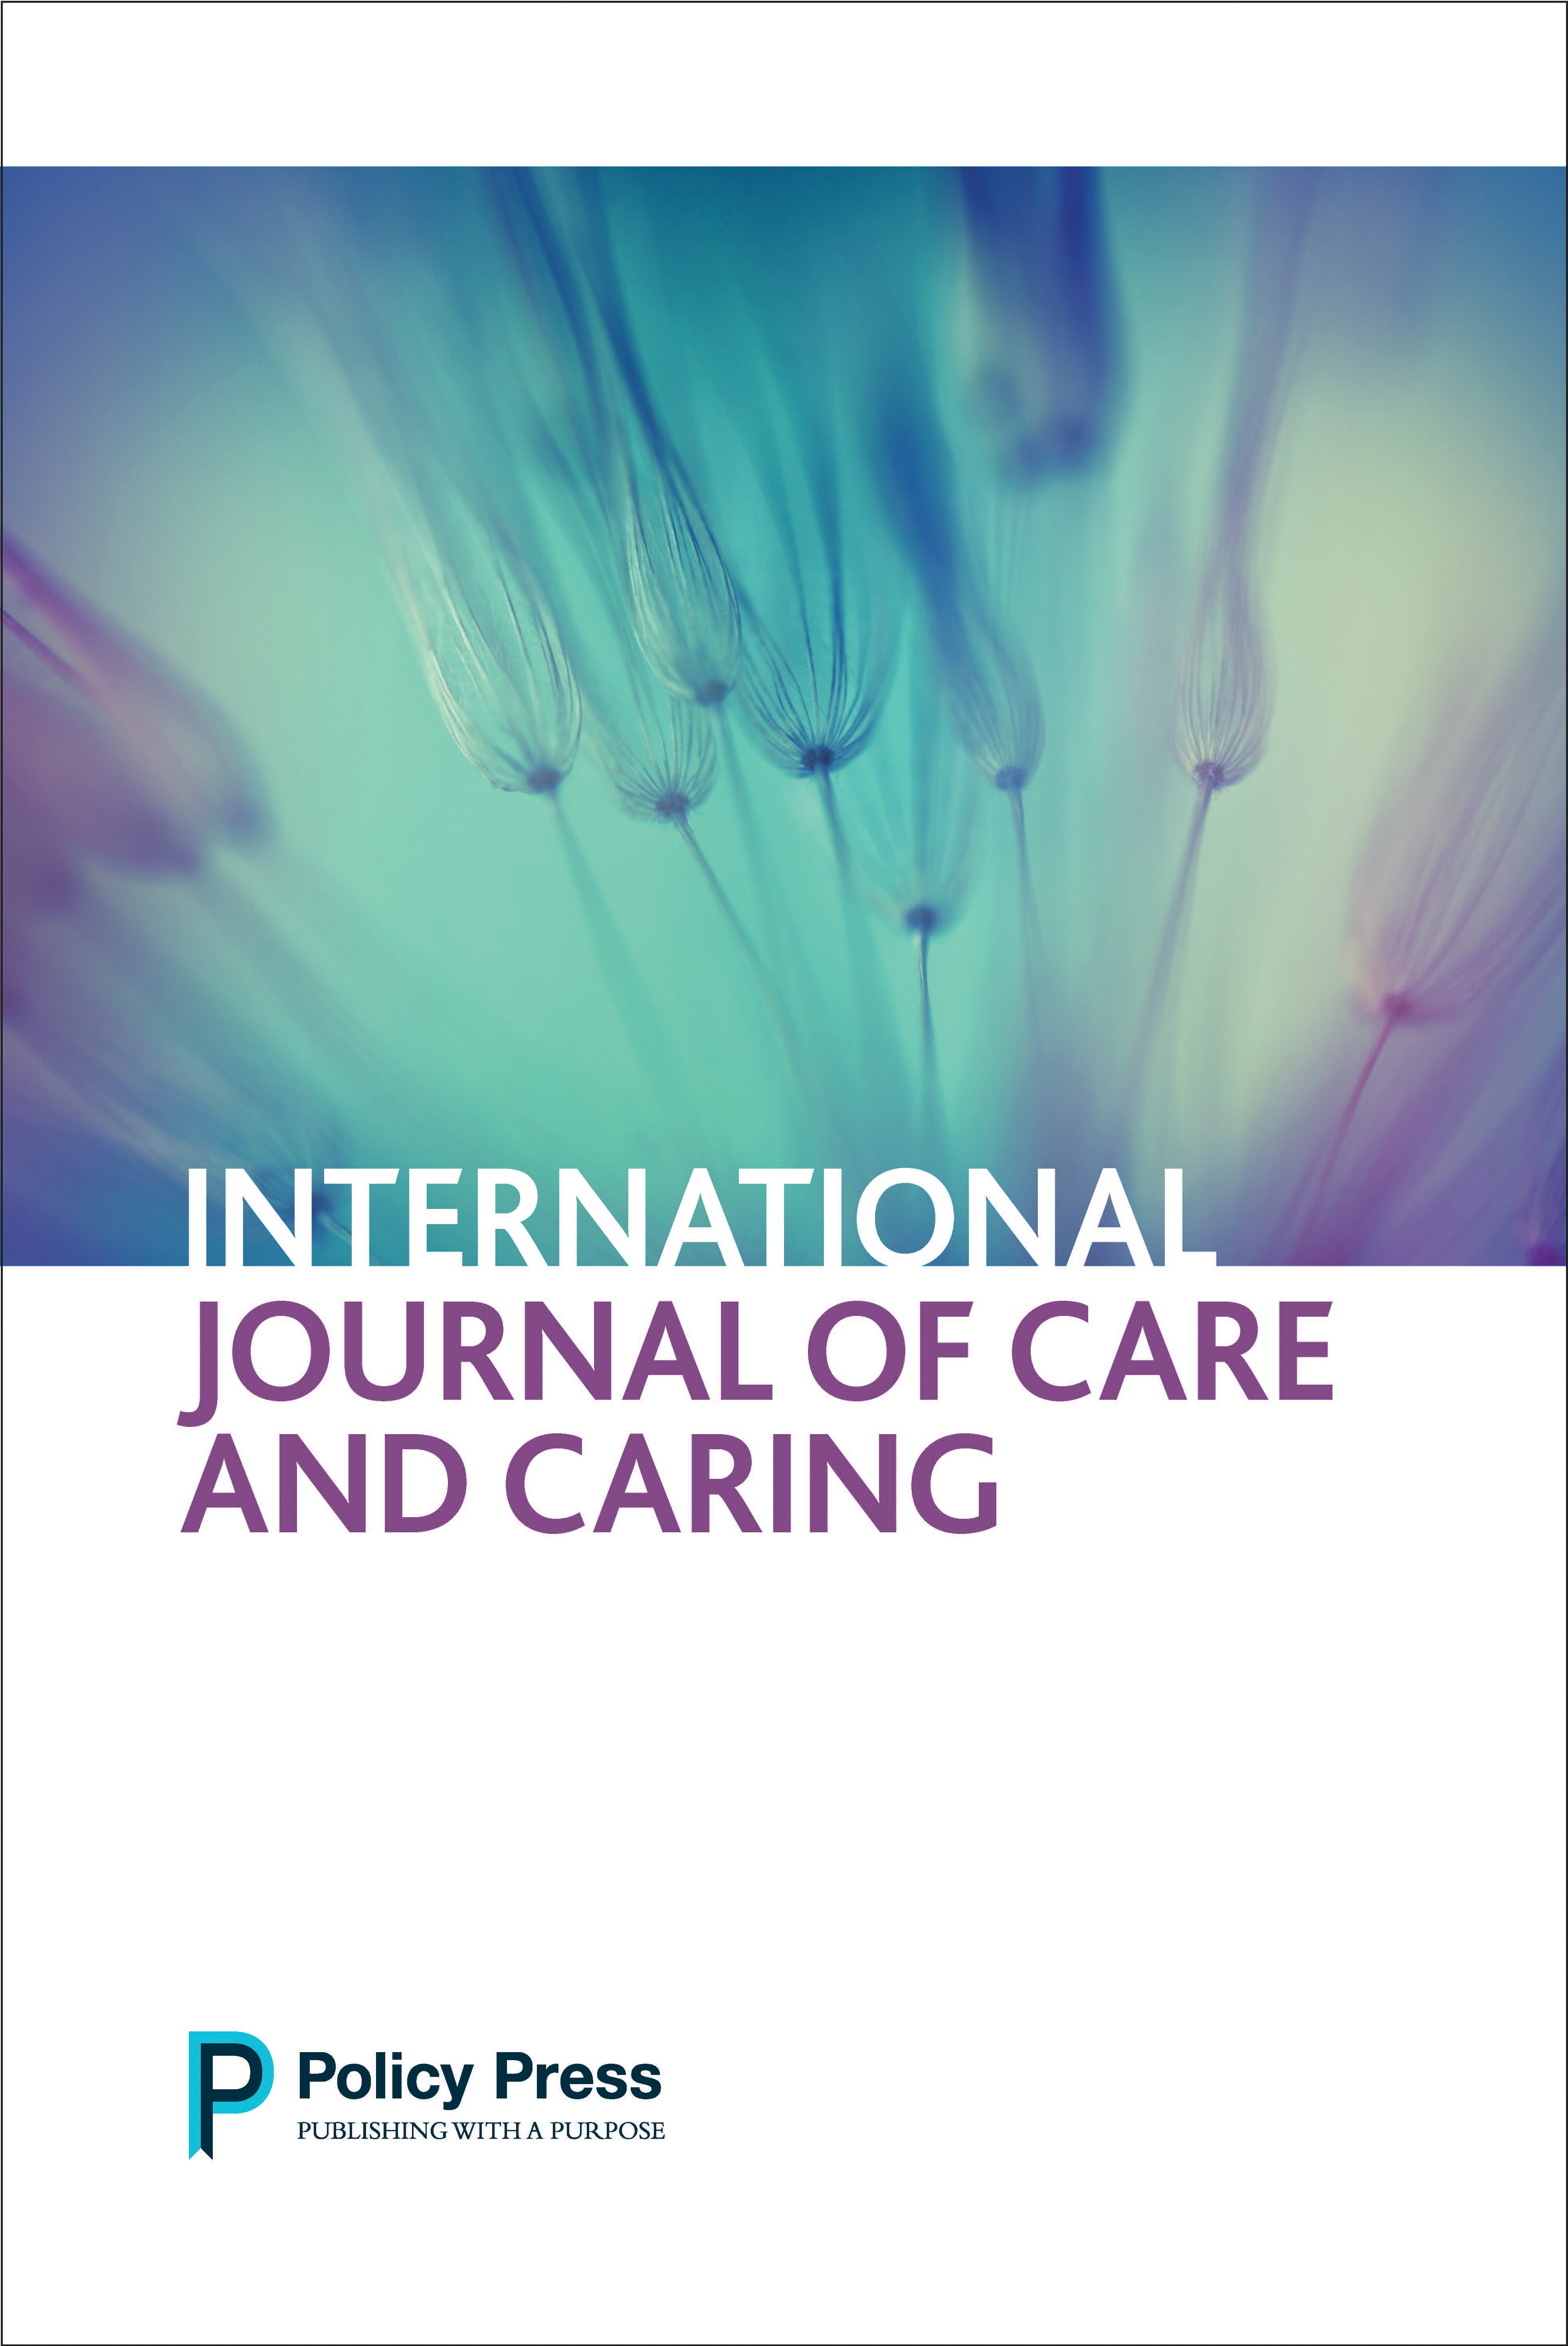 International Journal of Care and Caring coming in 2017